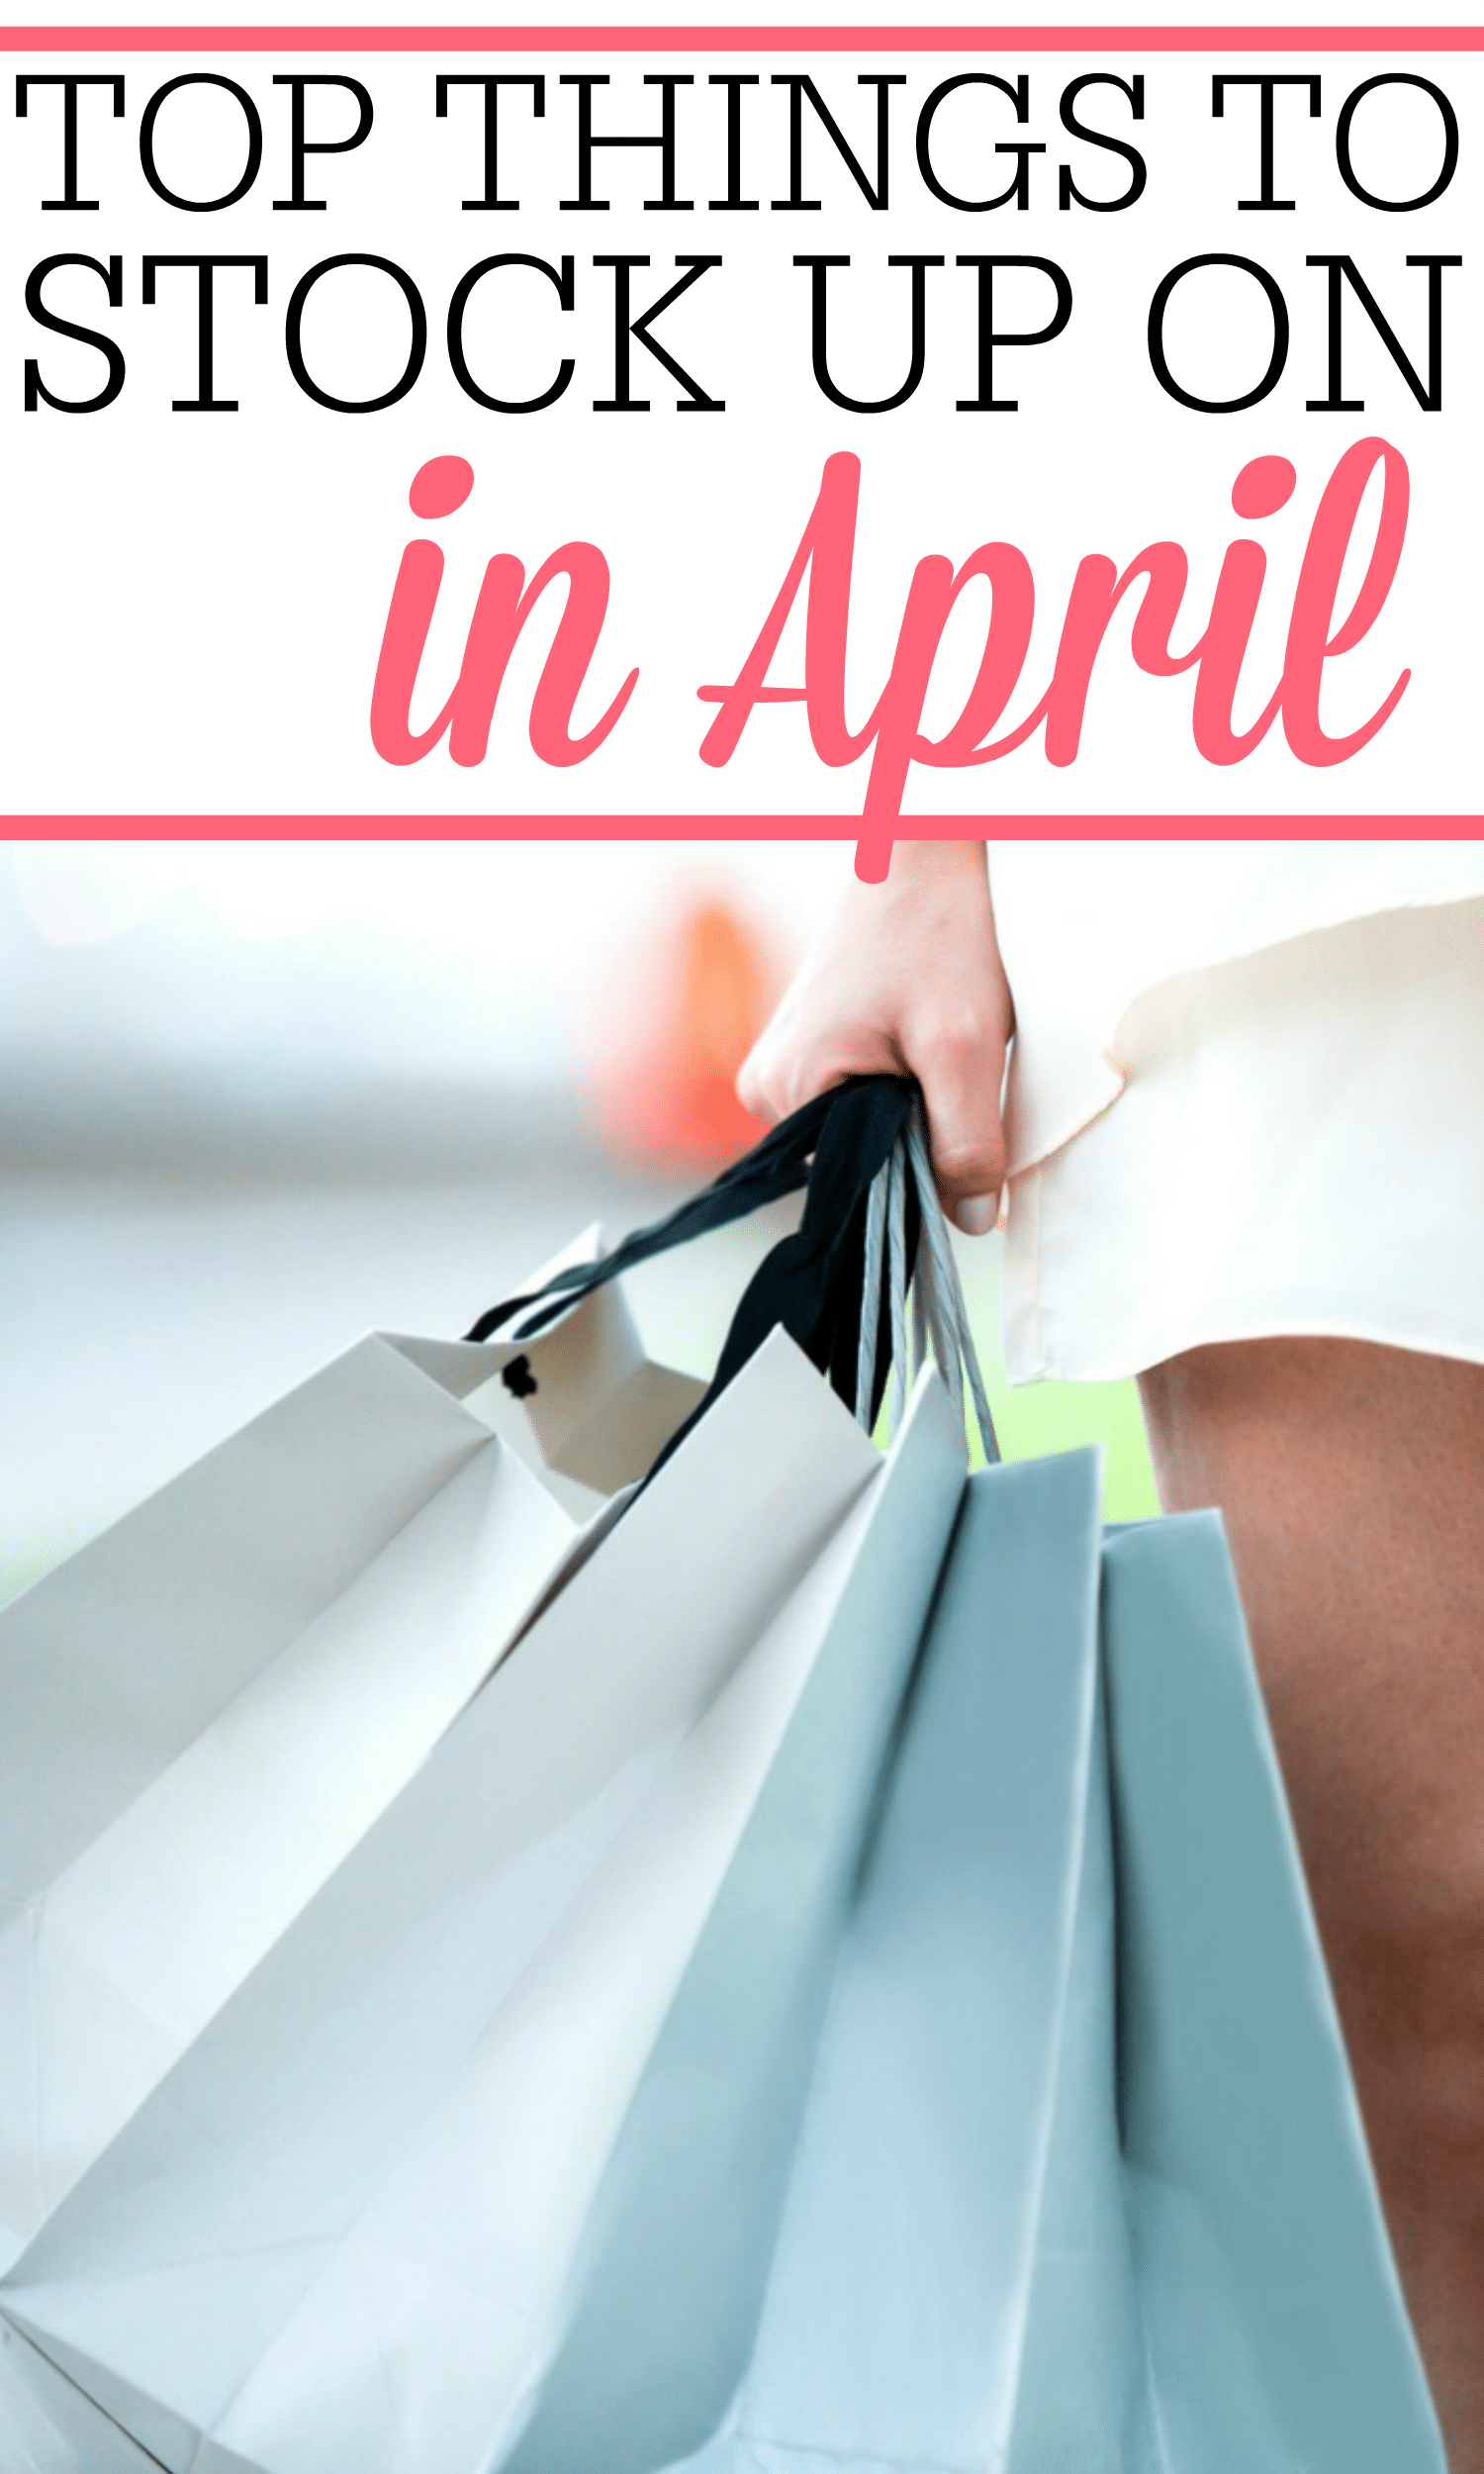 Trying to save more money? Check out the top things to stock up on in April to really save. It's an easy way to save more money without much work.